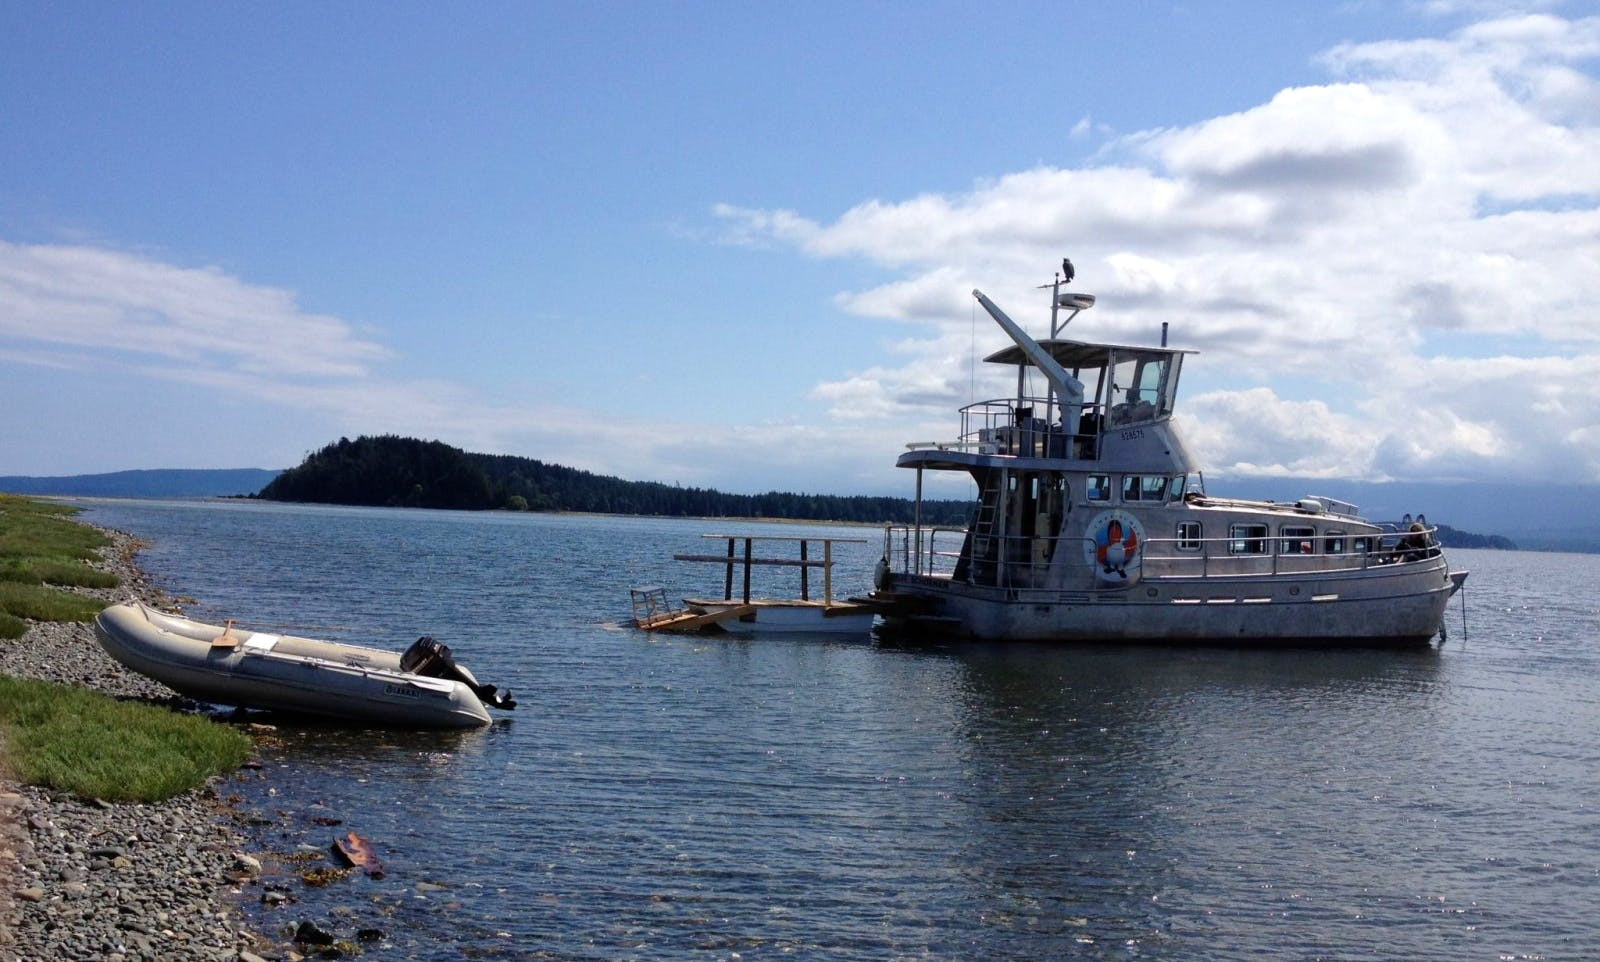 Afternoon Scenic Boat Cruises In Comox